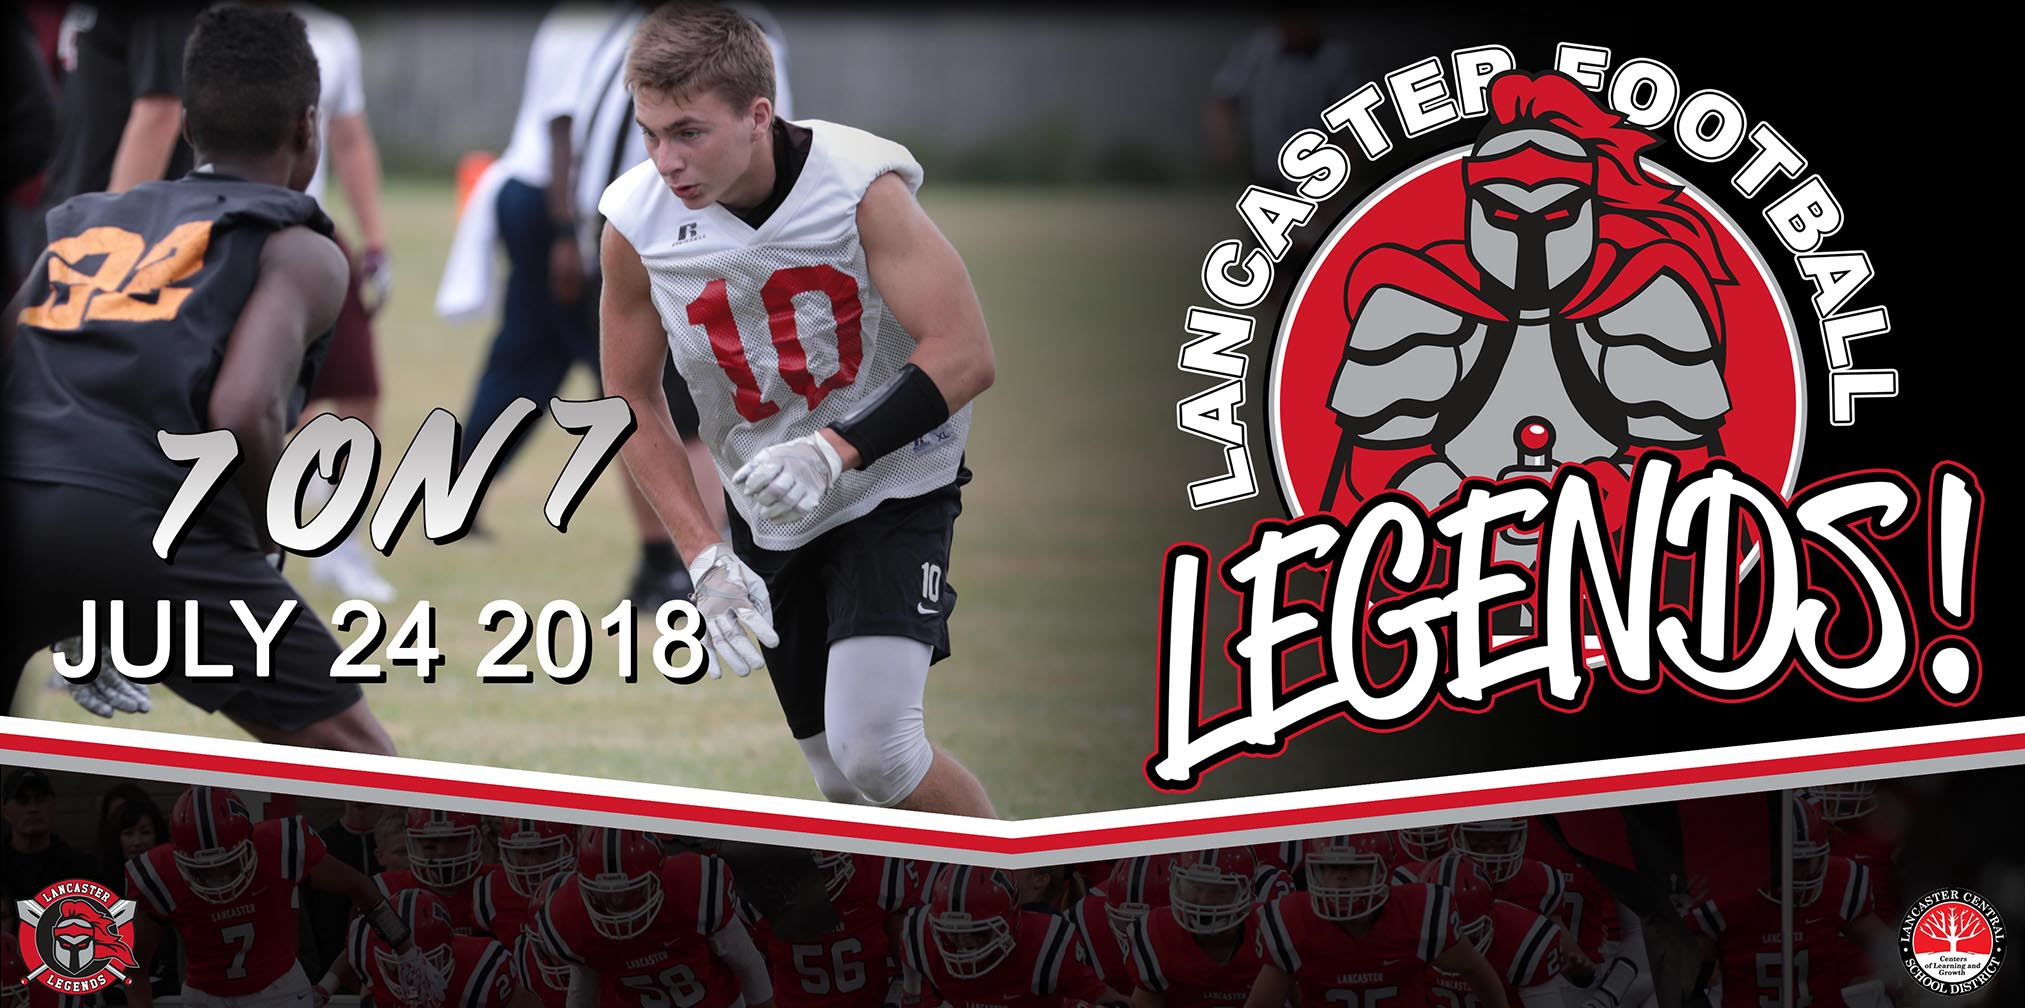 7 on 7 at Lancaster HS